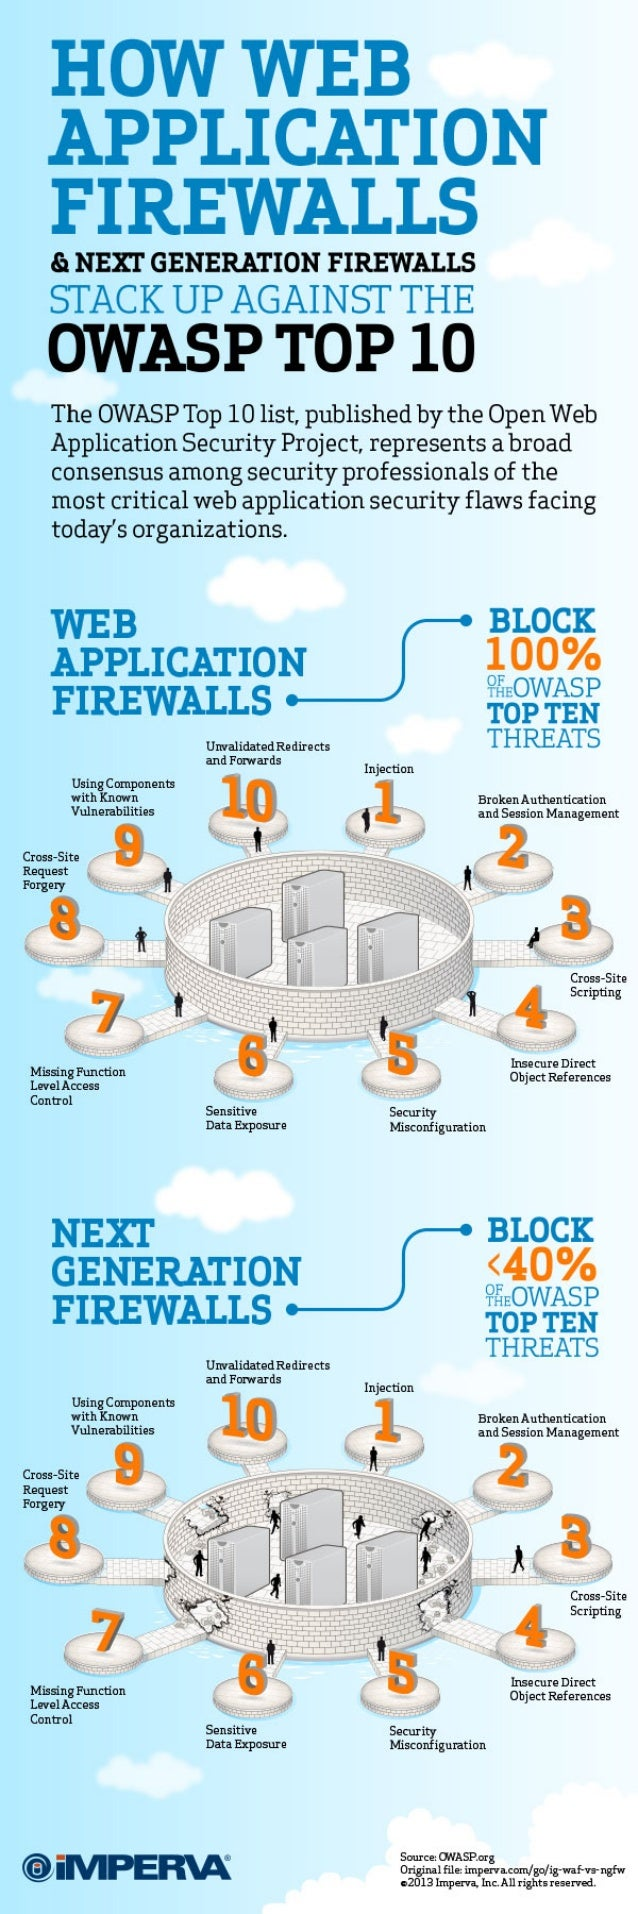 Web Applications Under Attack: Why Network Security Solutions Leave You Exposed